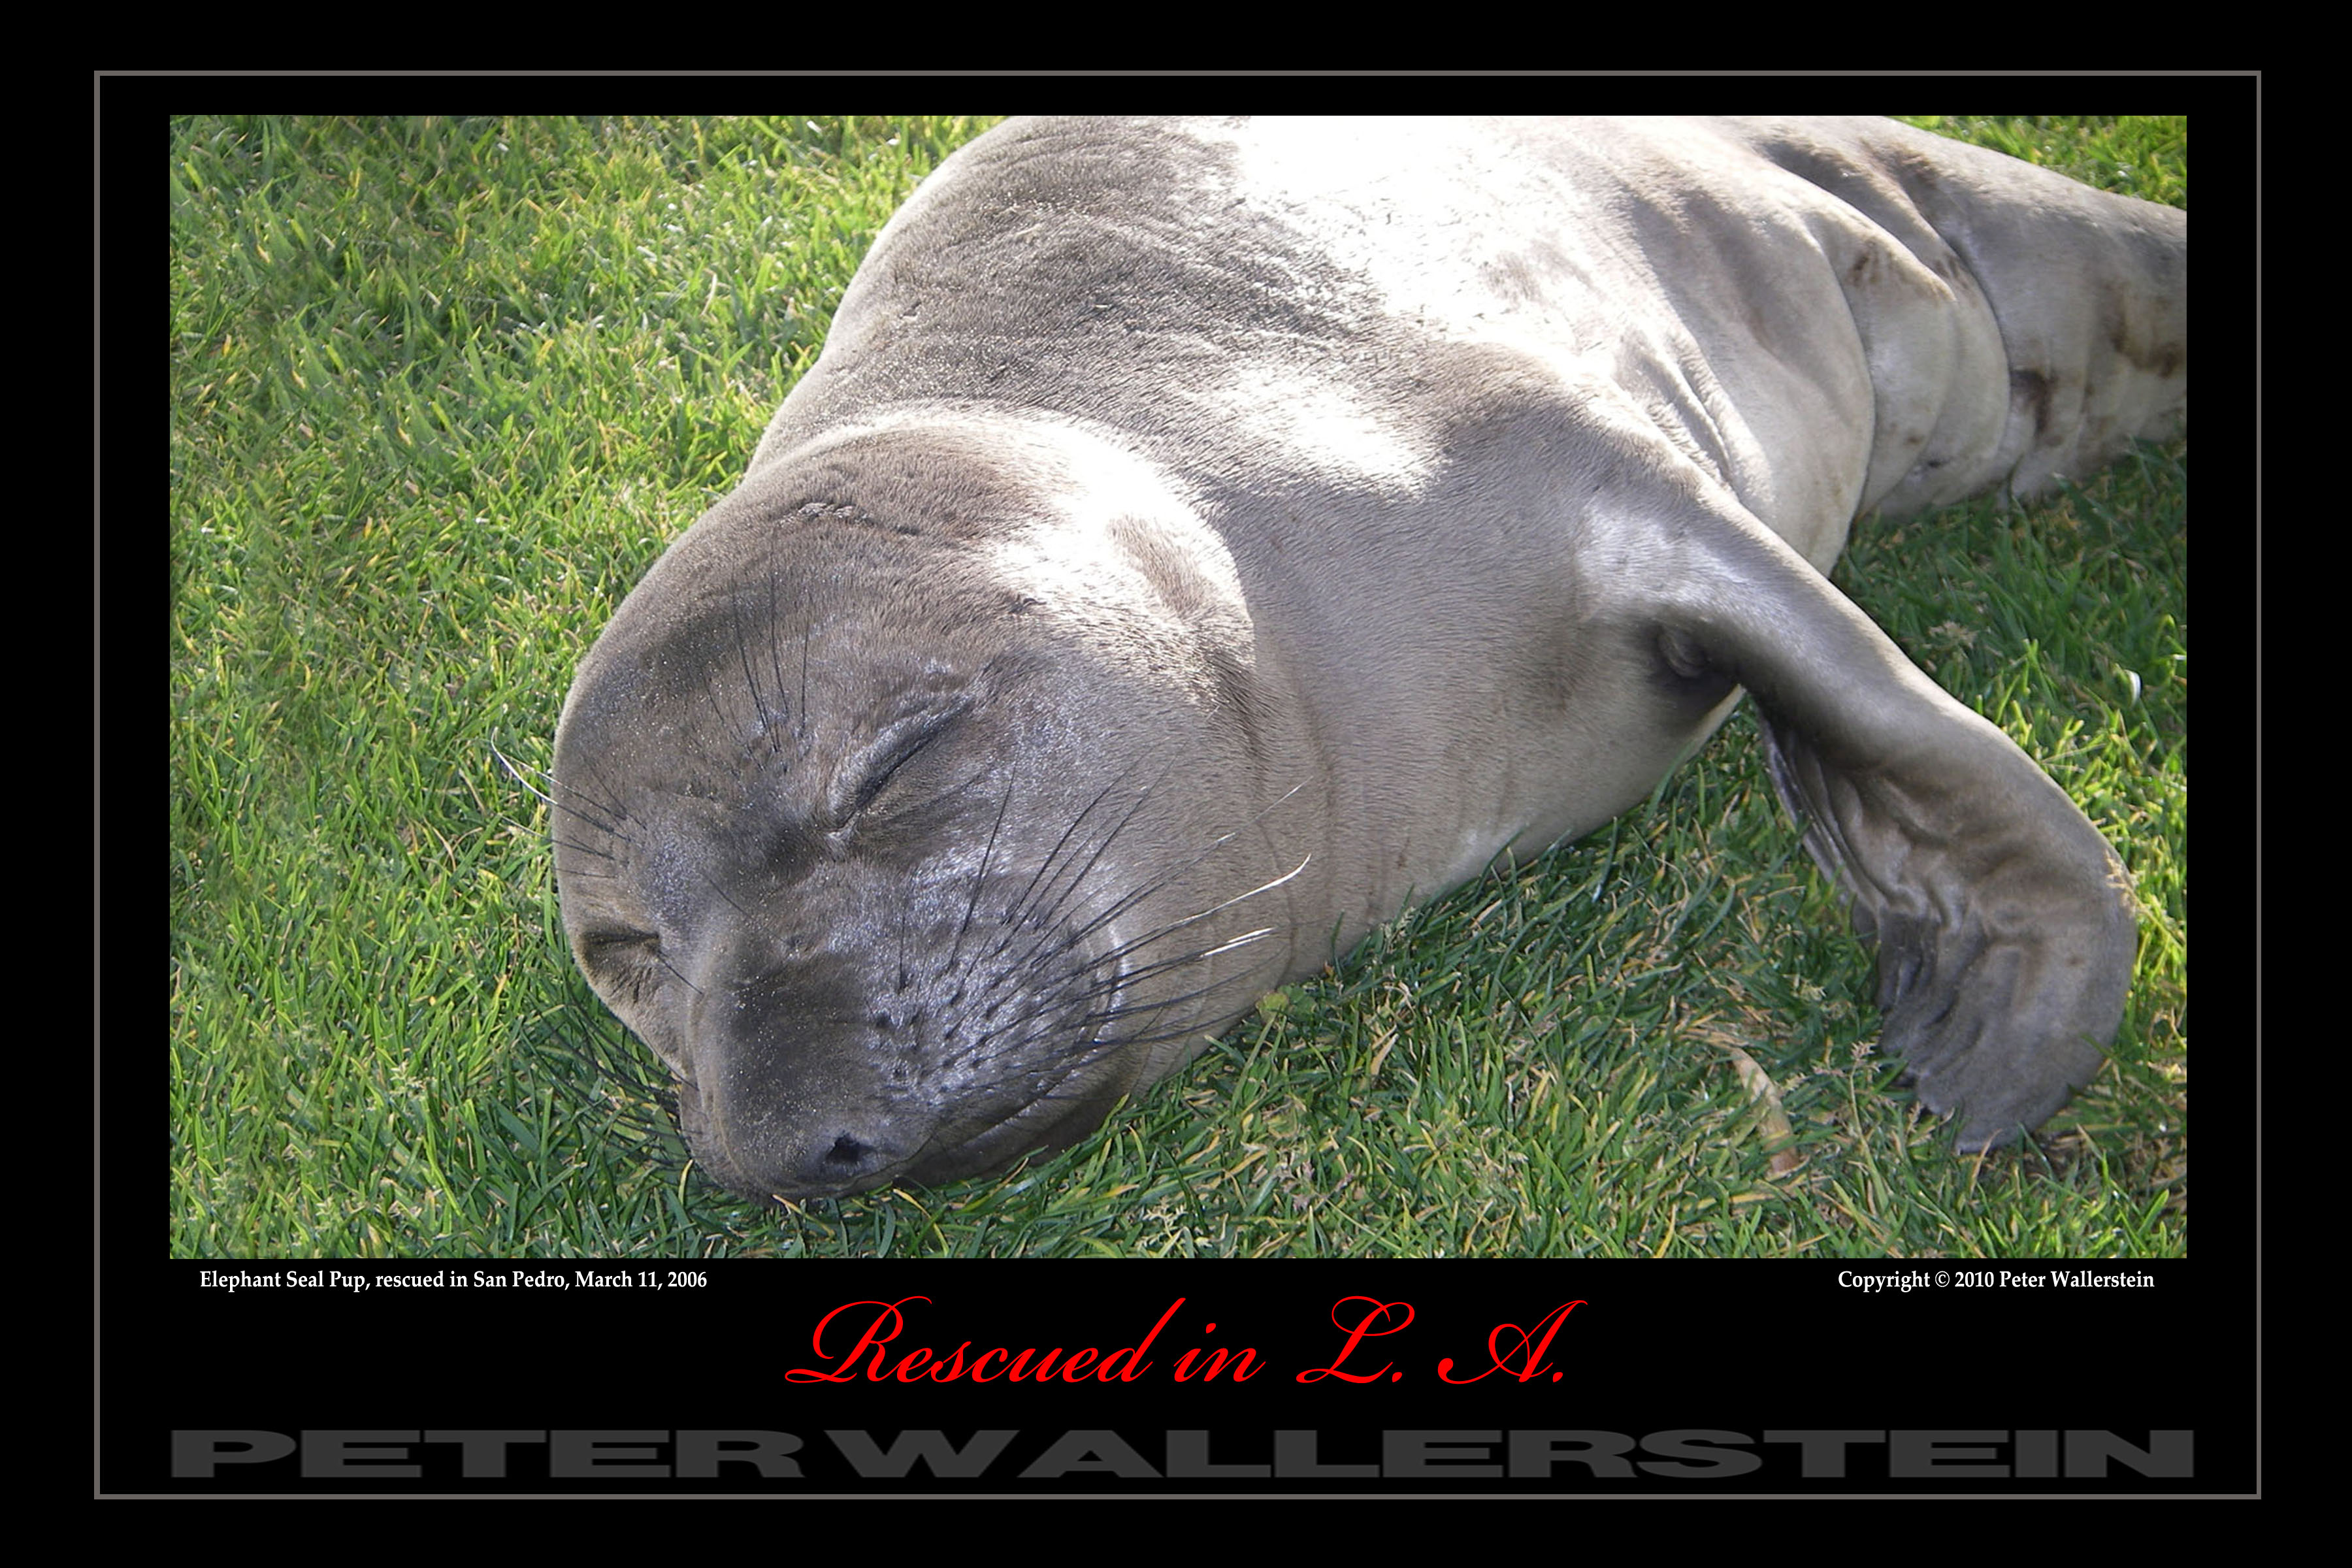 Elephant Seal Pup On Grass Lawn